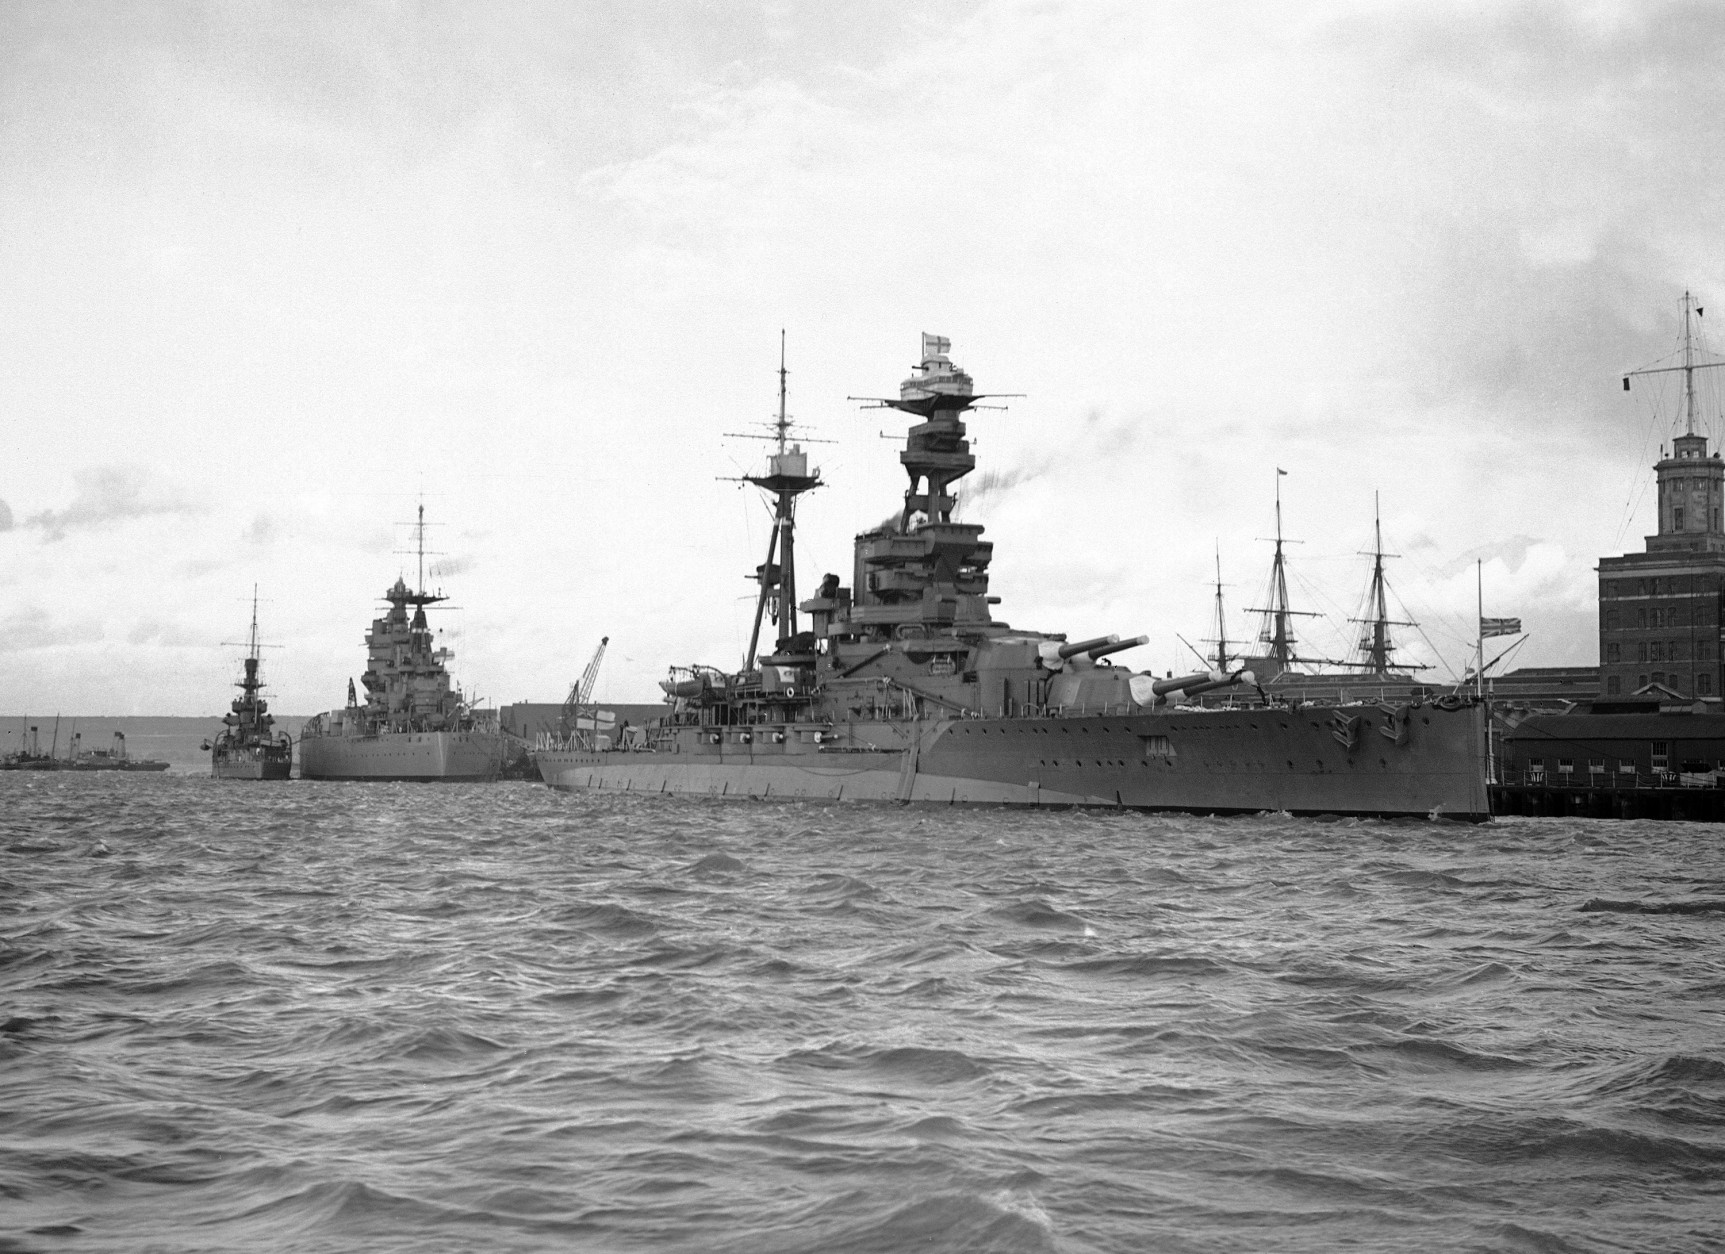 The HMS Royal Oak at anchor in Portsmouth, England on Nov. 23, 1938 carrying the coffin containing the body of Queen Maud for conveyance to Norway. Behind her is the HMS Rodney, and the Ark Royal. (AP Photo)